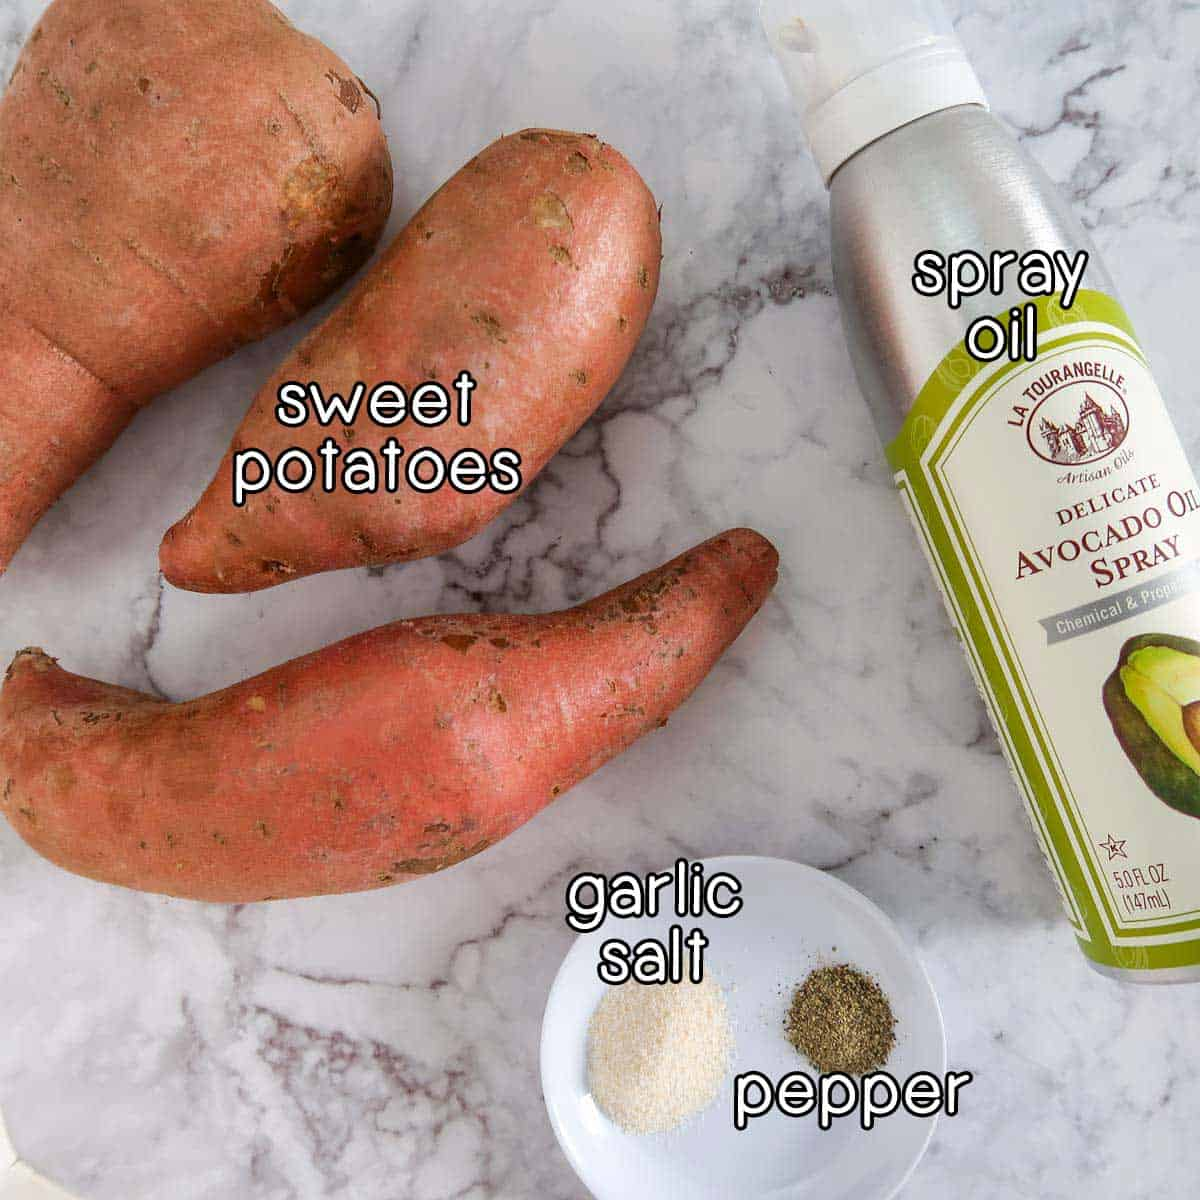 Overhead view of ingredients on a white marble surface, including sweet potatoes, spray oil, garlic salt, and pepper.